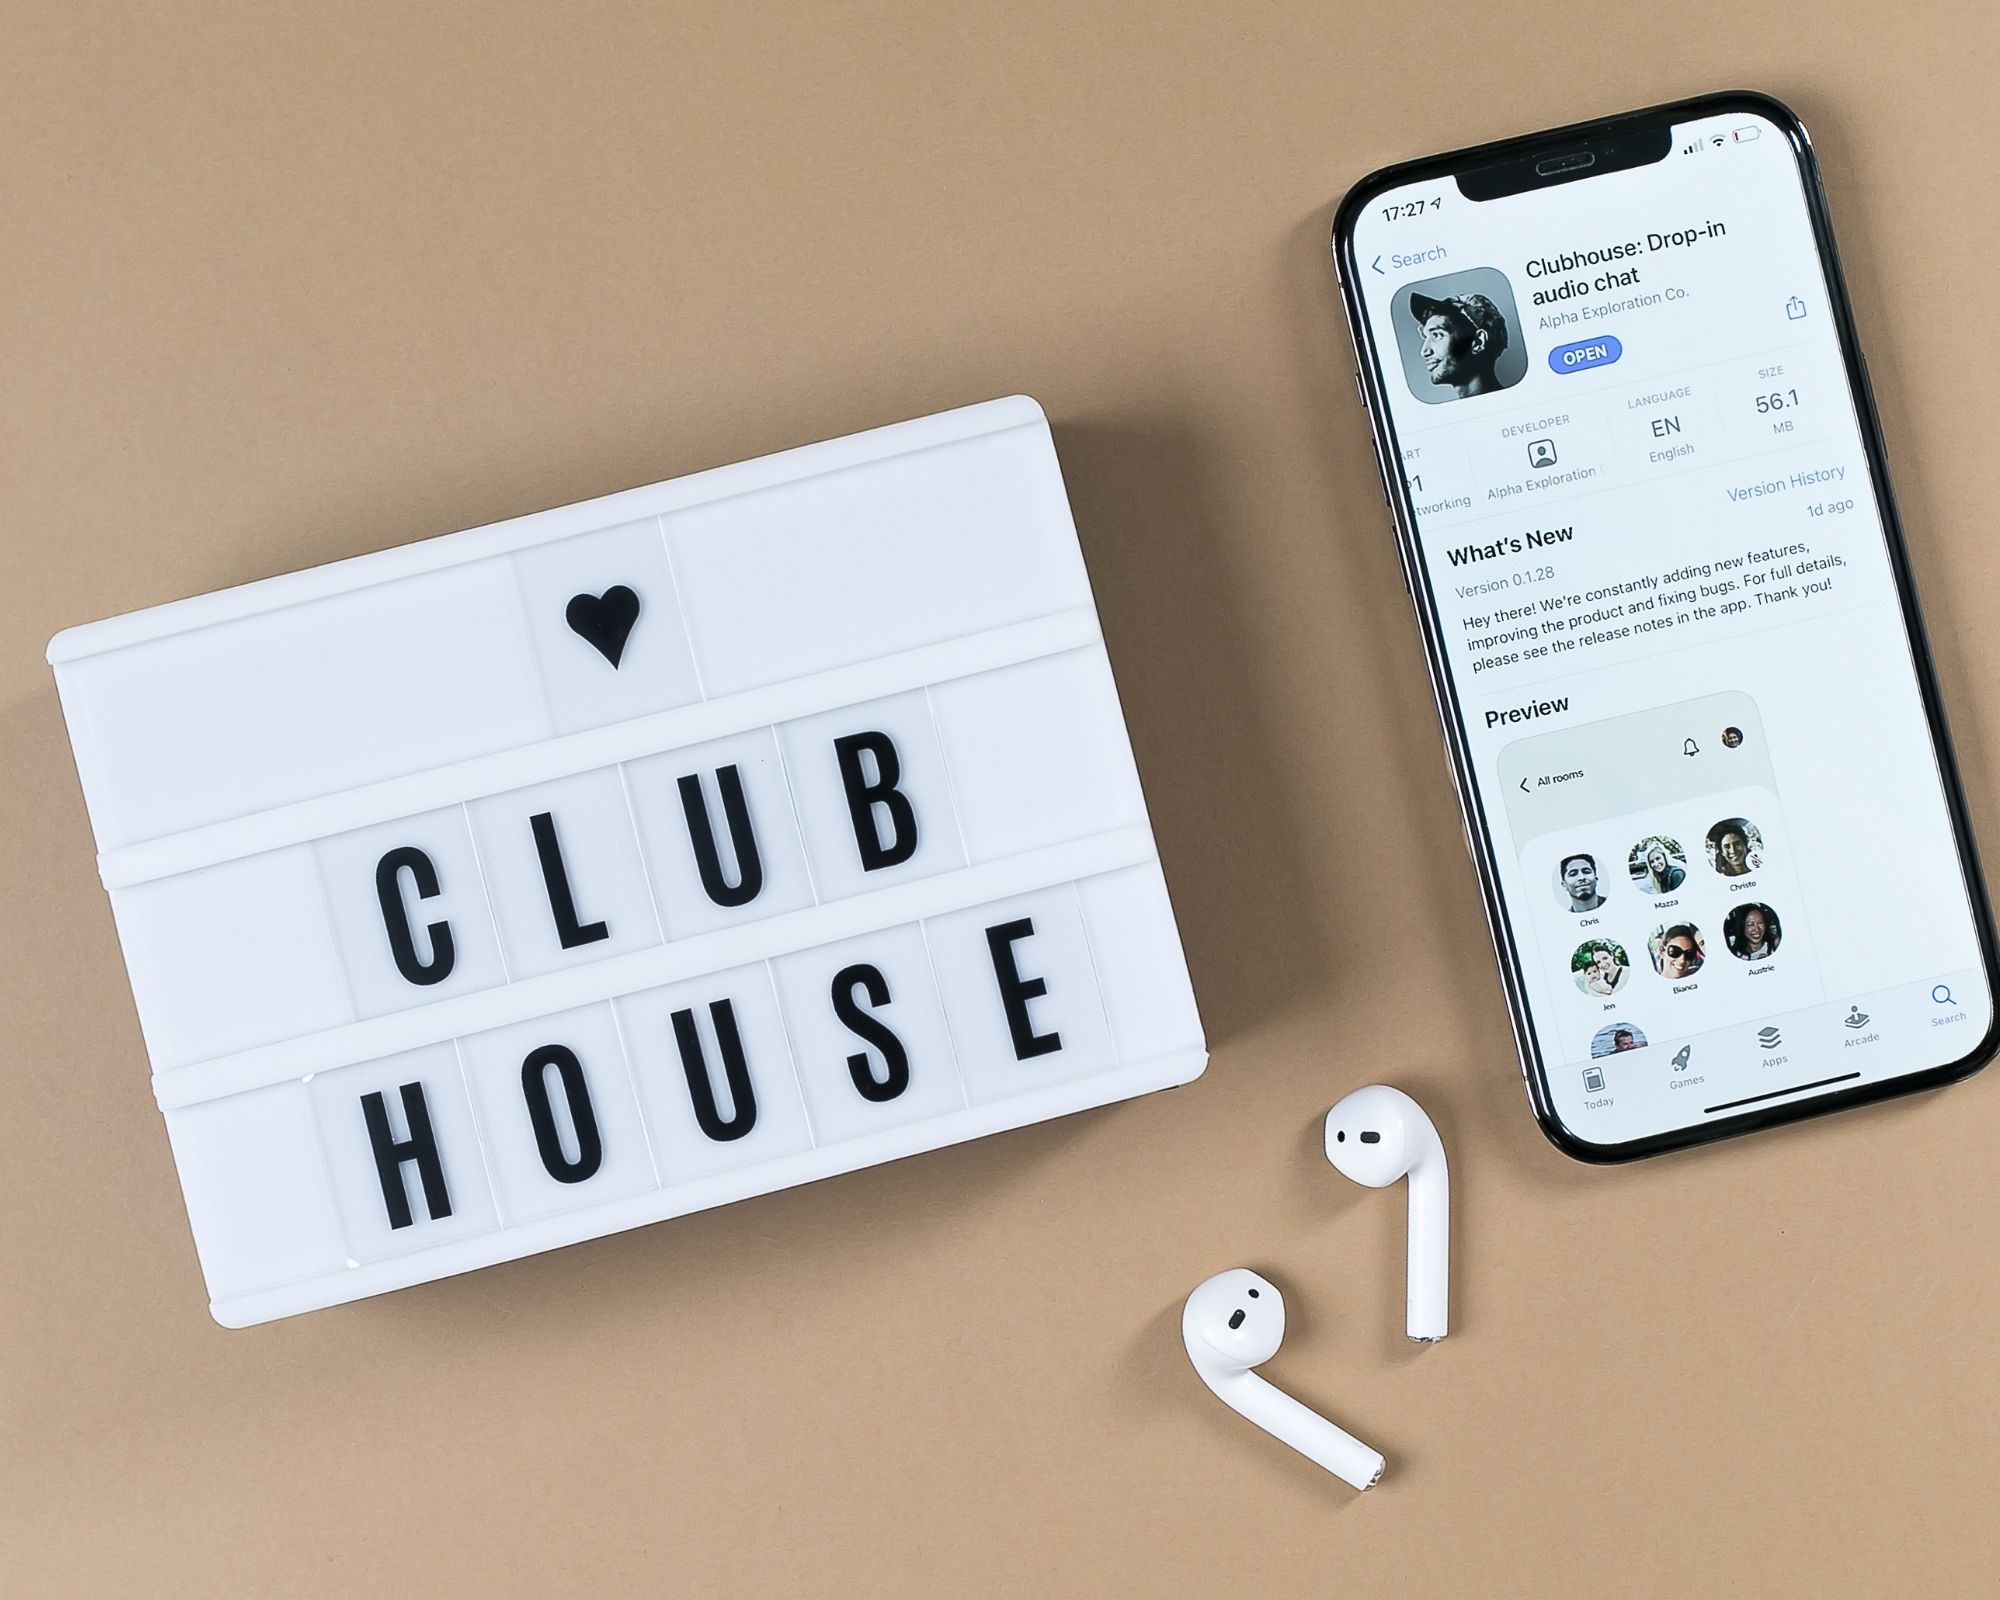 Clubhouse can be a powerful marketing tool